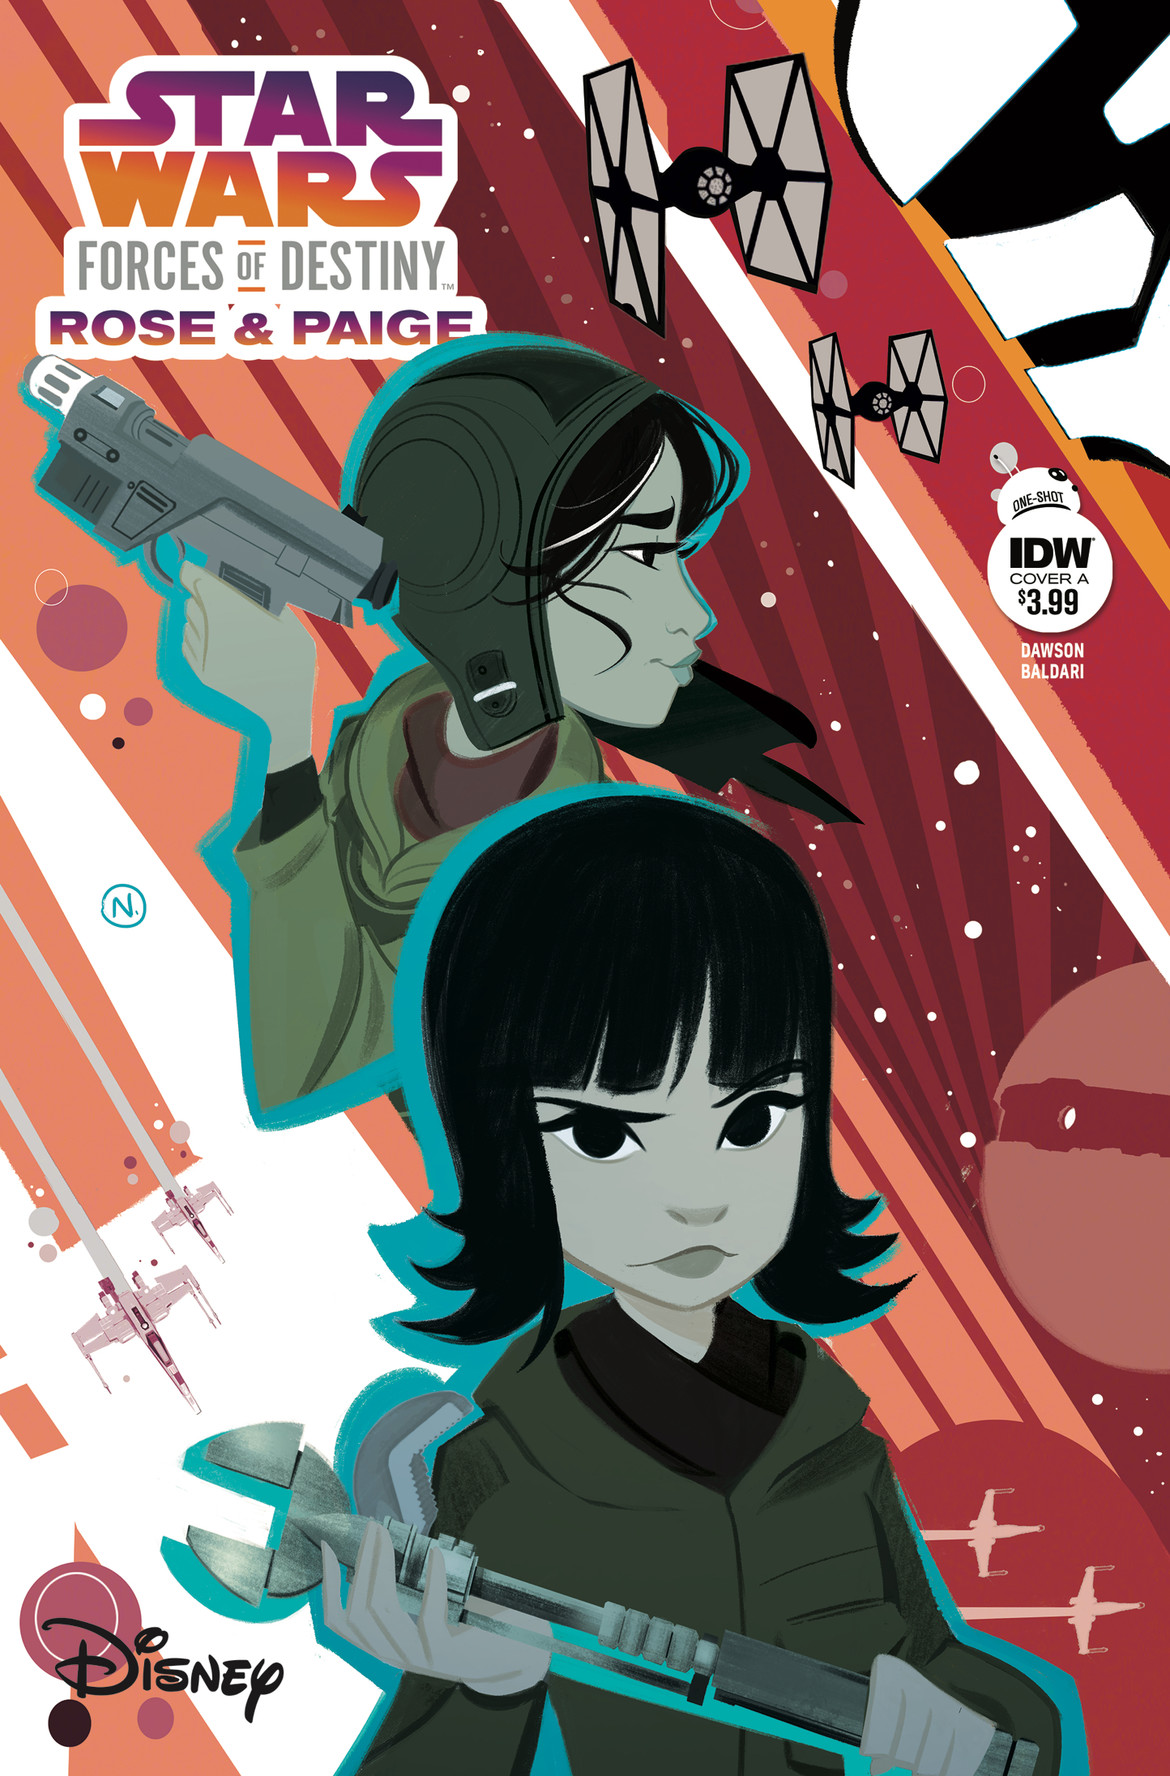 forces-of-destiny-rose-and-paige-tico.jpg